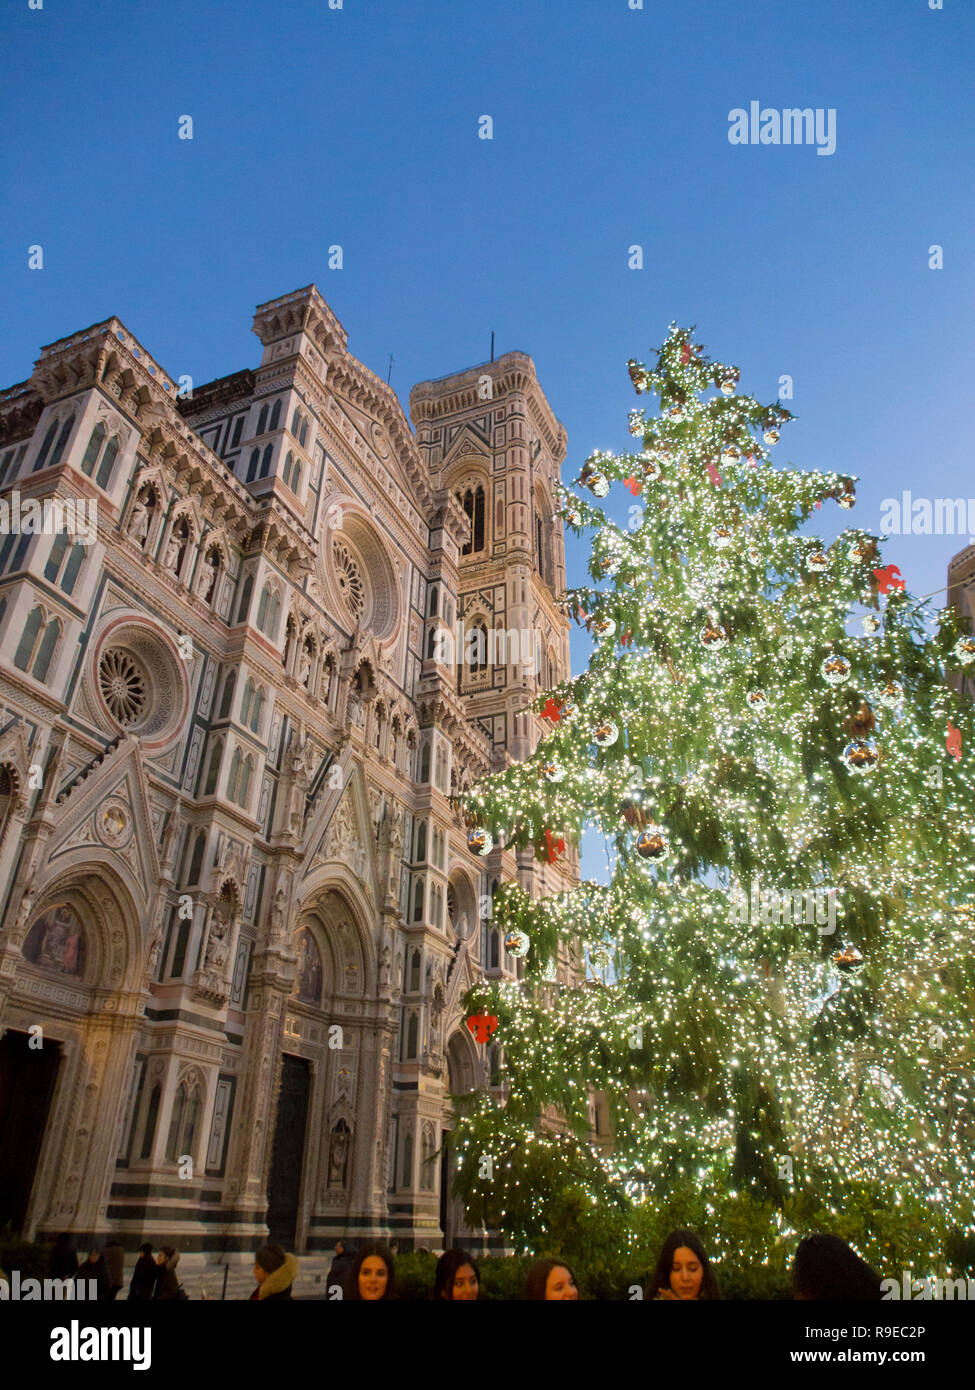 Christmas In Florence Italy.Italy Tuscany Florence The Cathedral At Christmas Time